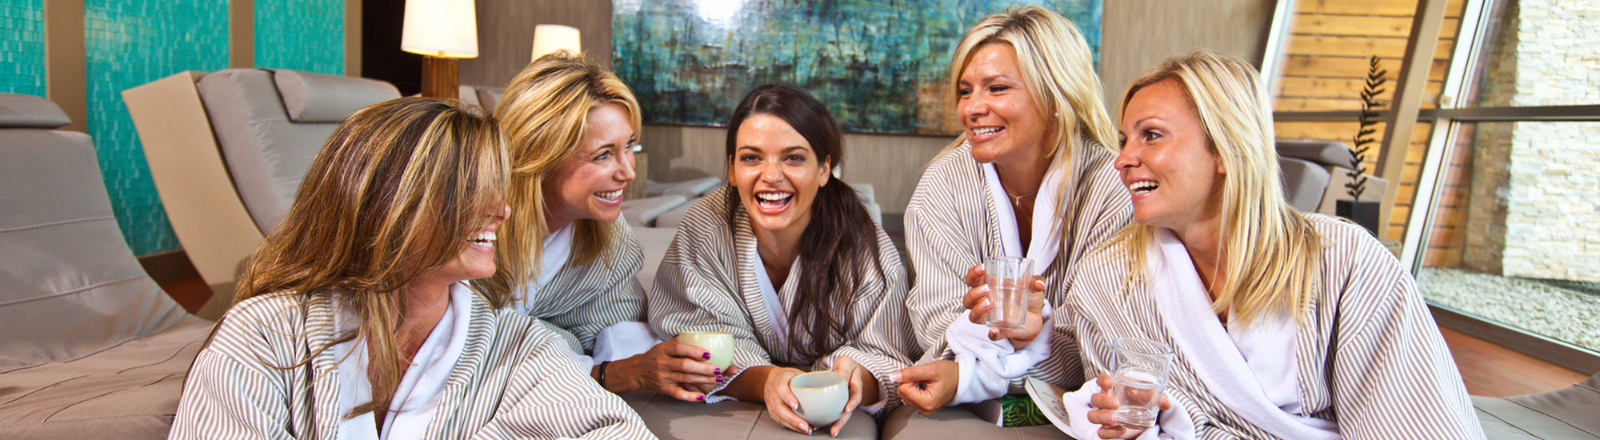 Five young women in spa robes enjoy time together in lounge area as they await their spa treatments at Mt. Hood Oregon Resort